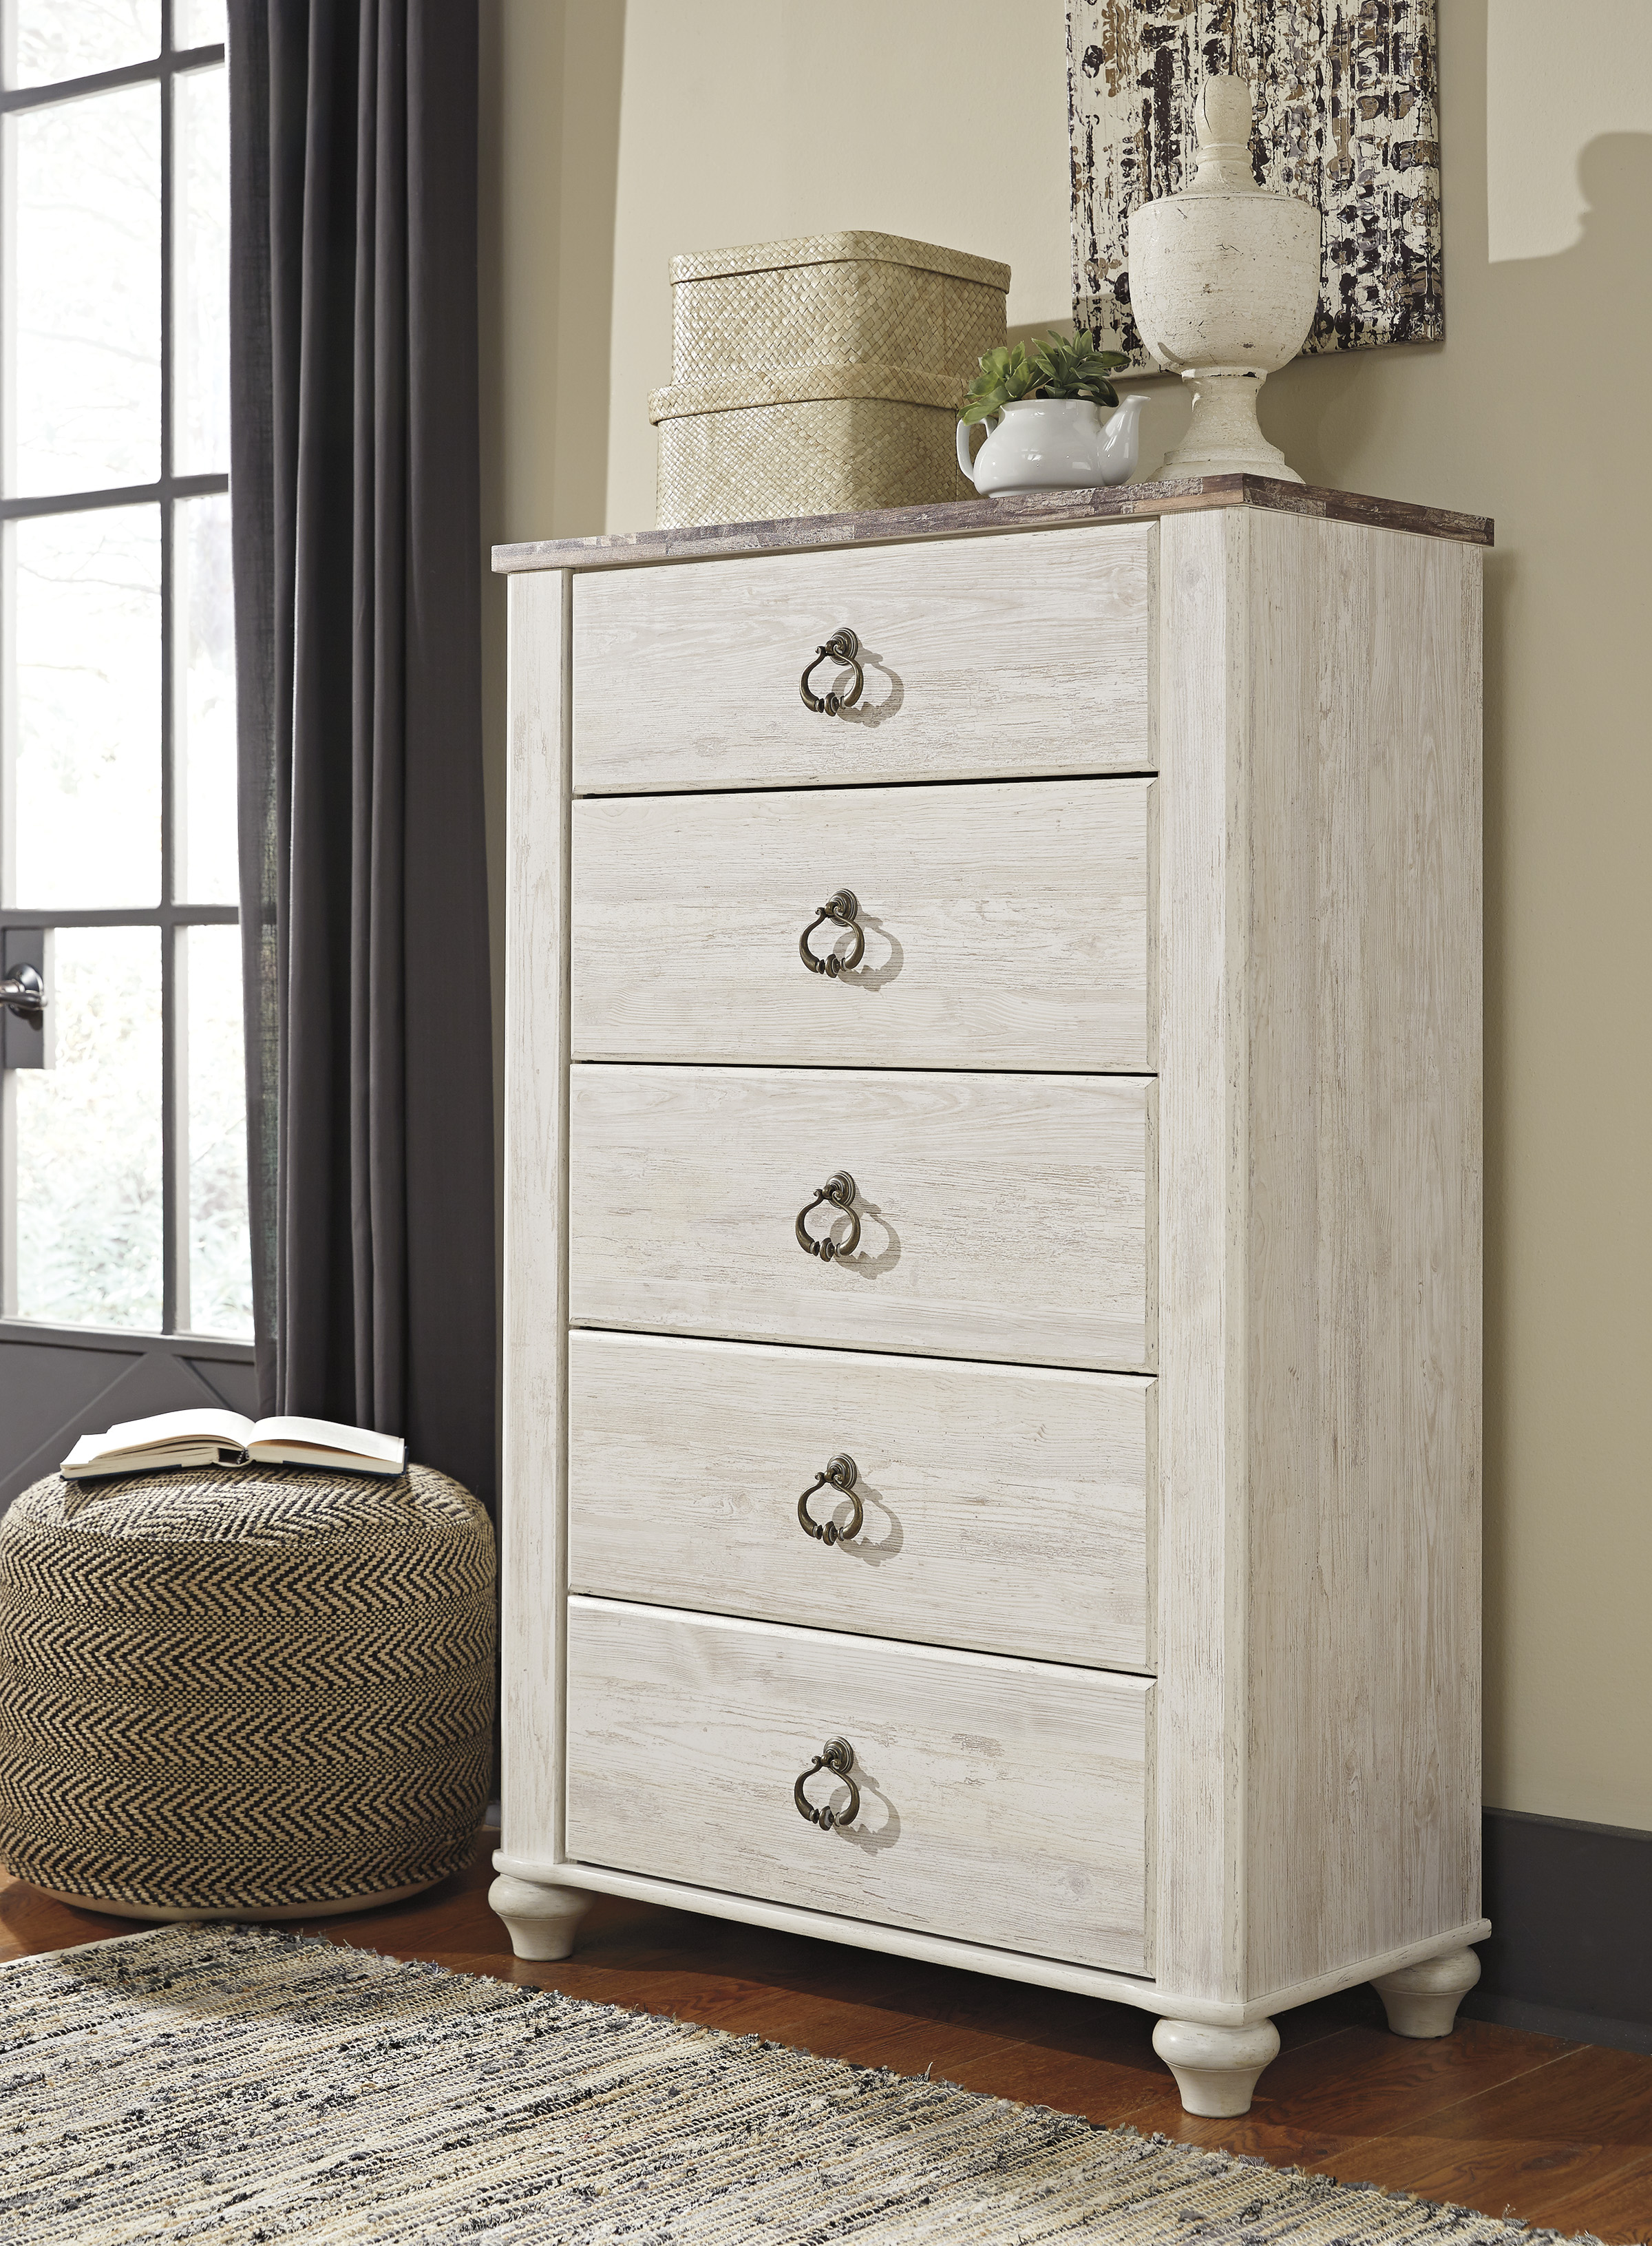 Willowton Whitewash Bedroom Set Clearance Sale Marjen Of Chicago Chicago Discount Furniture